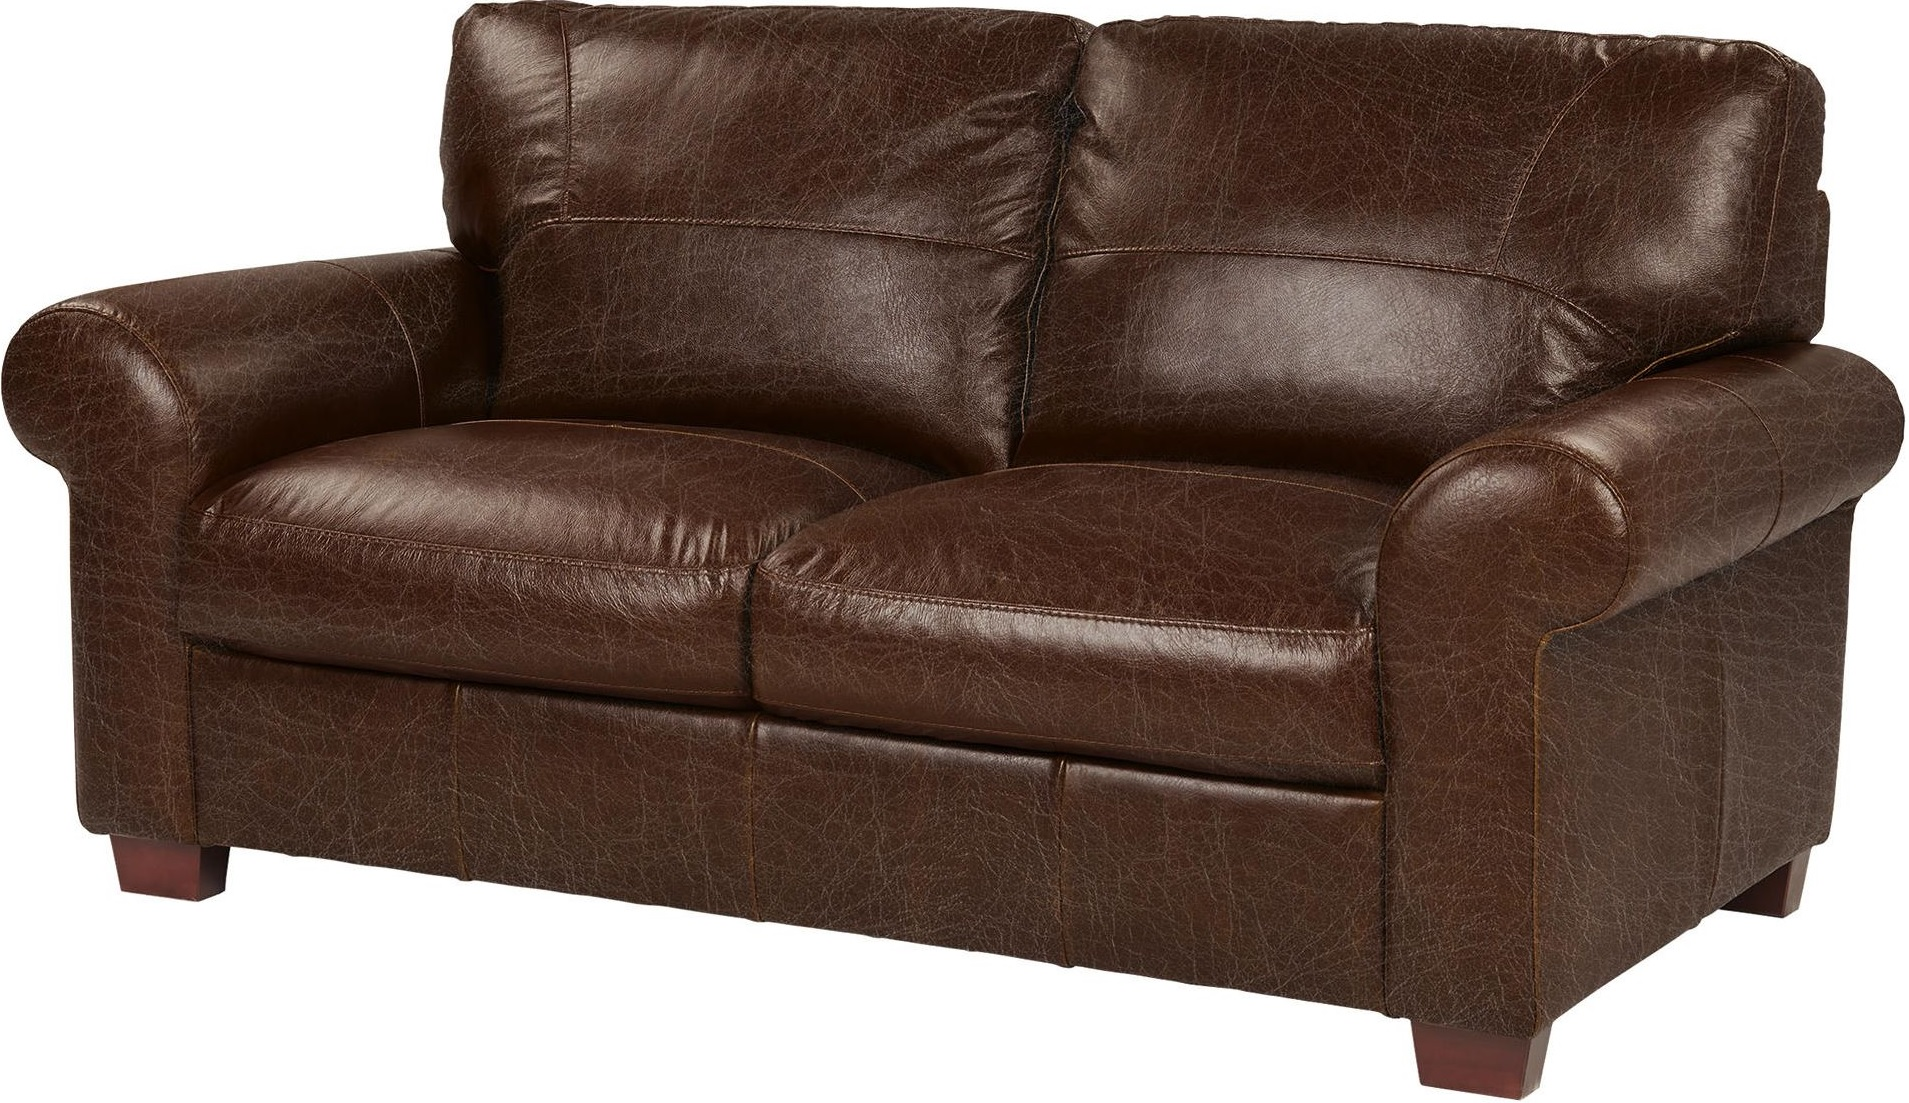 Tesco Ledbury Medium 2 Seater Real Leather Sofa